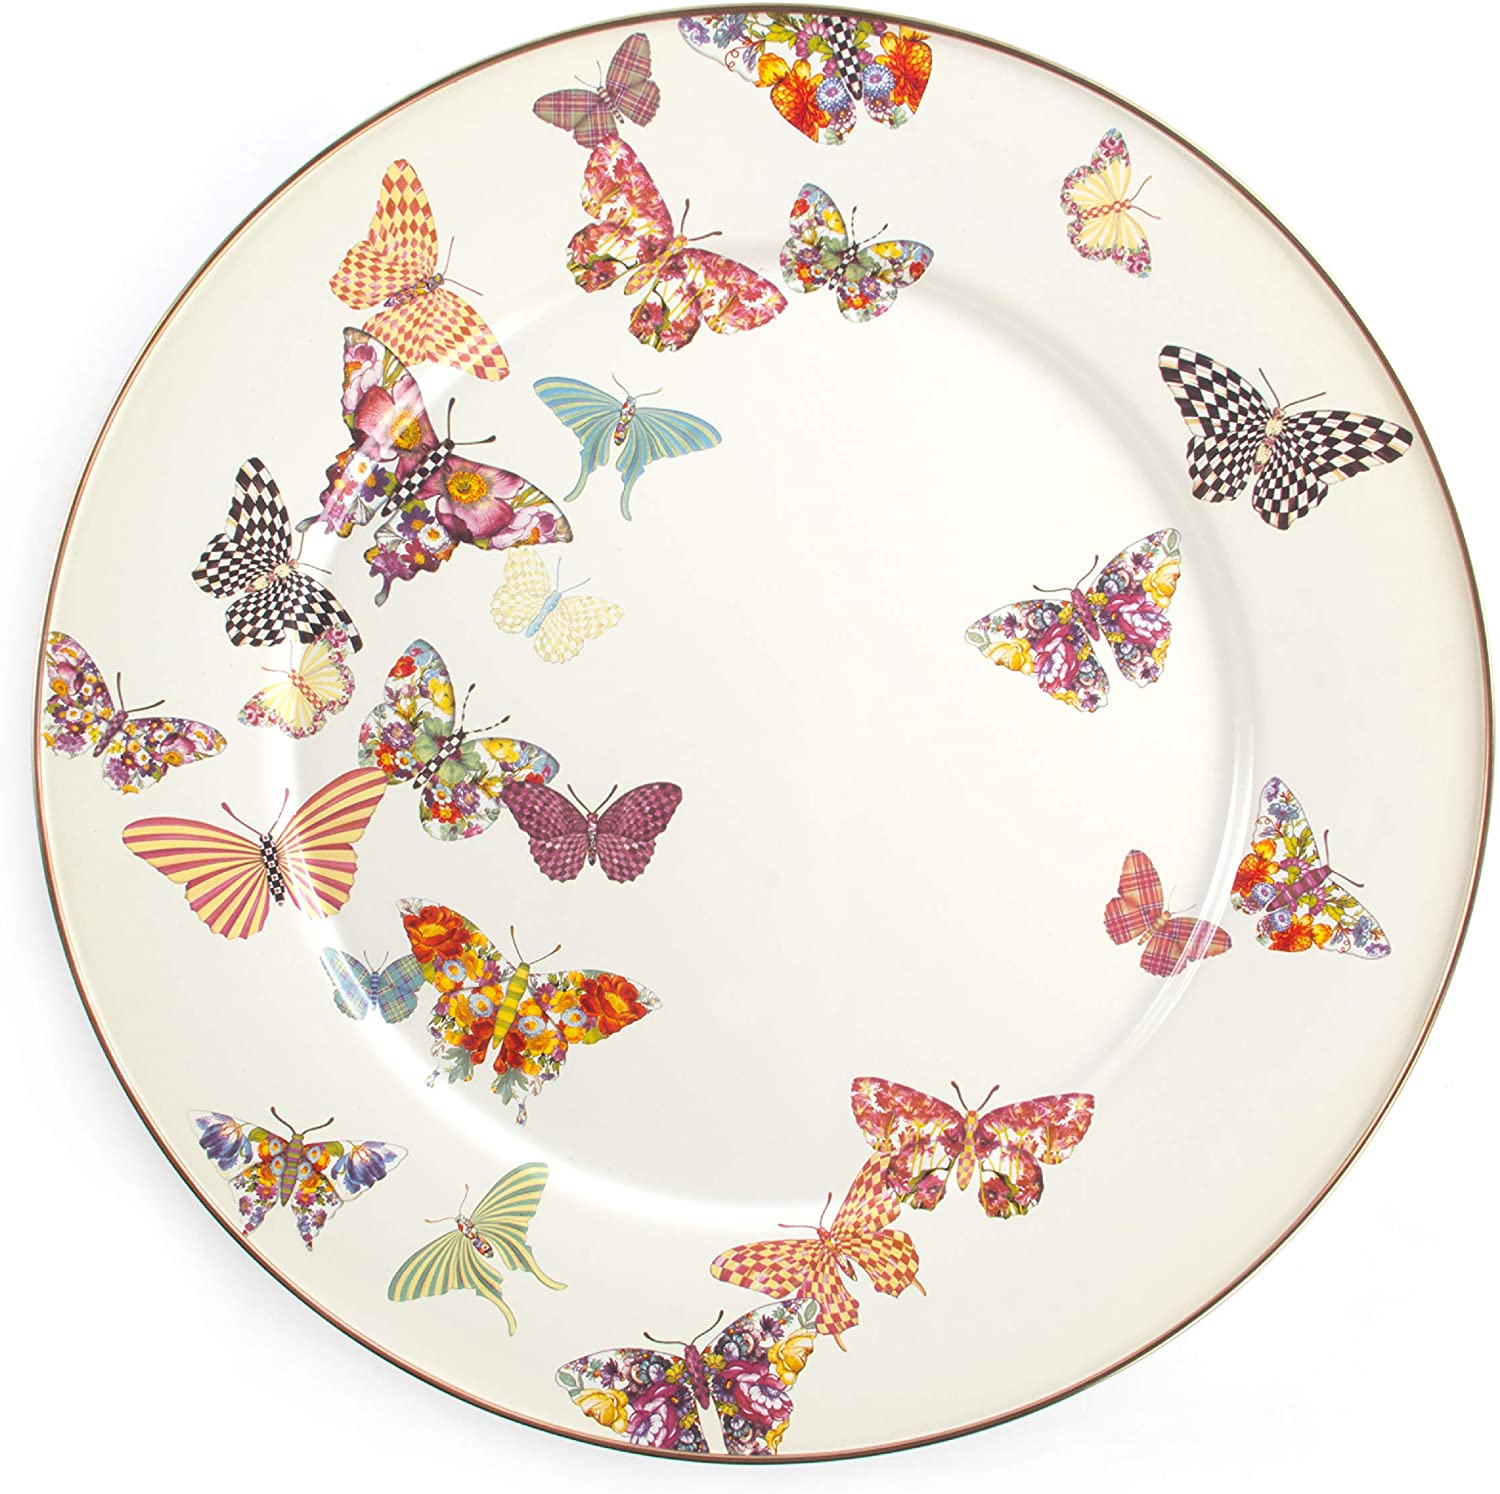 MacKenzie-Childs Butterfly Garden Serving Platter, Large Tea Tray, 16 Inches, White